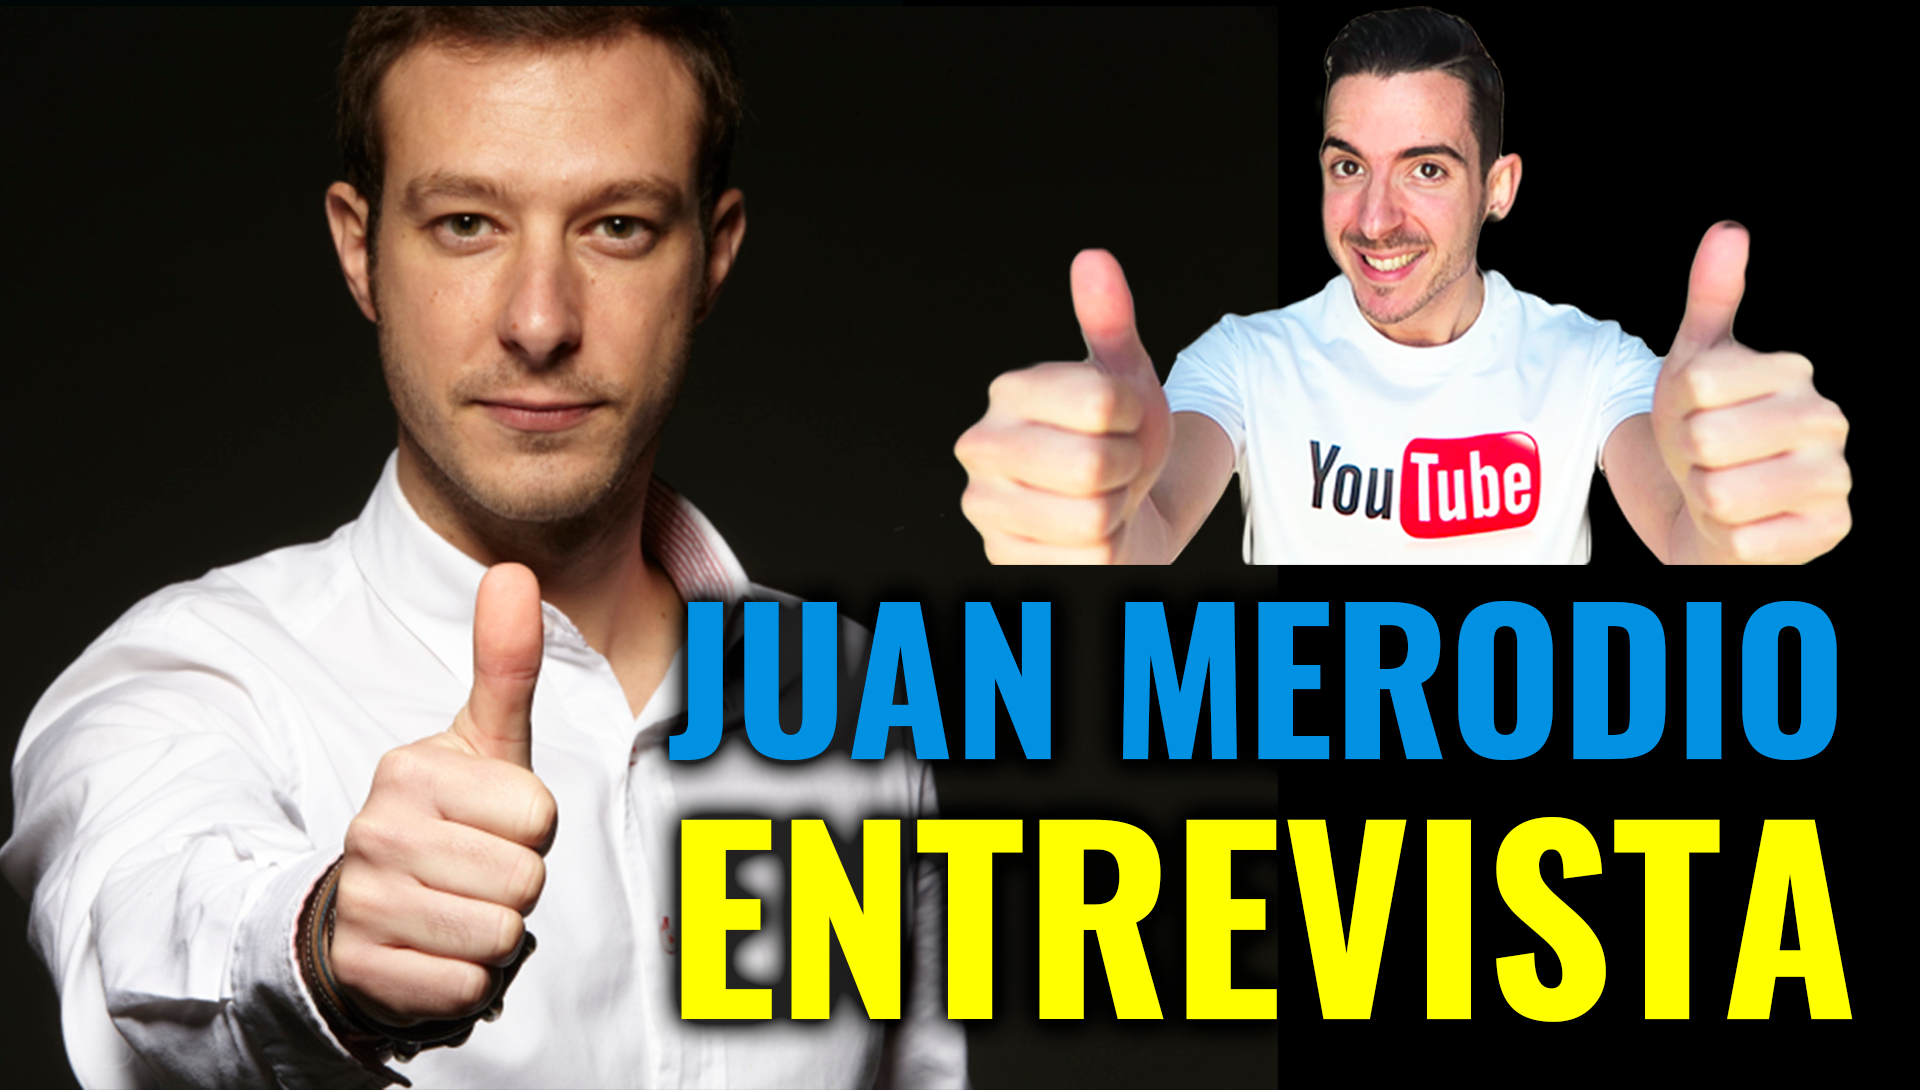 juan merodio marketing entrevista mugu